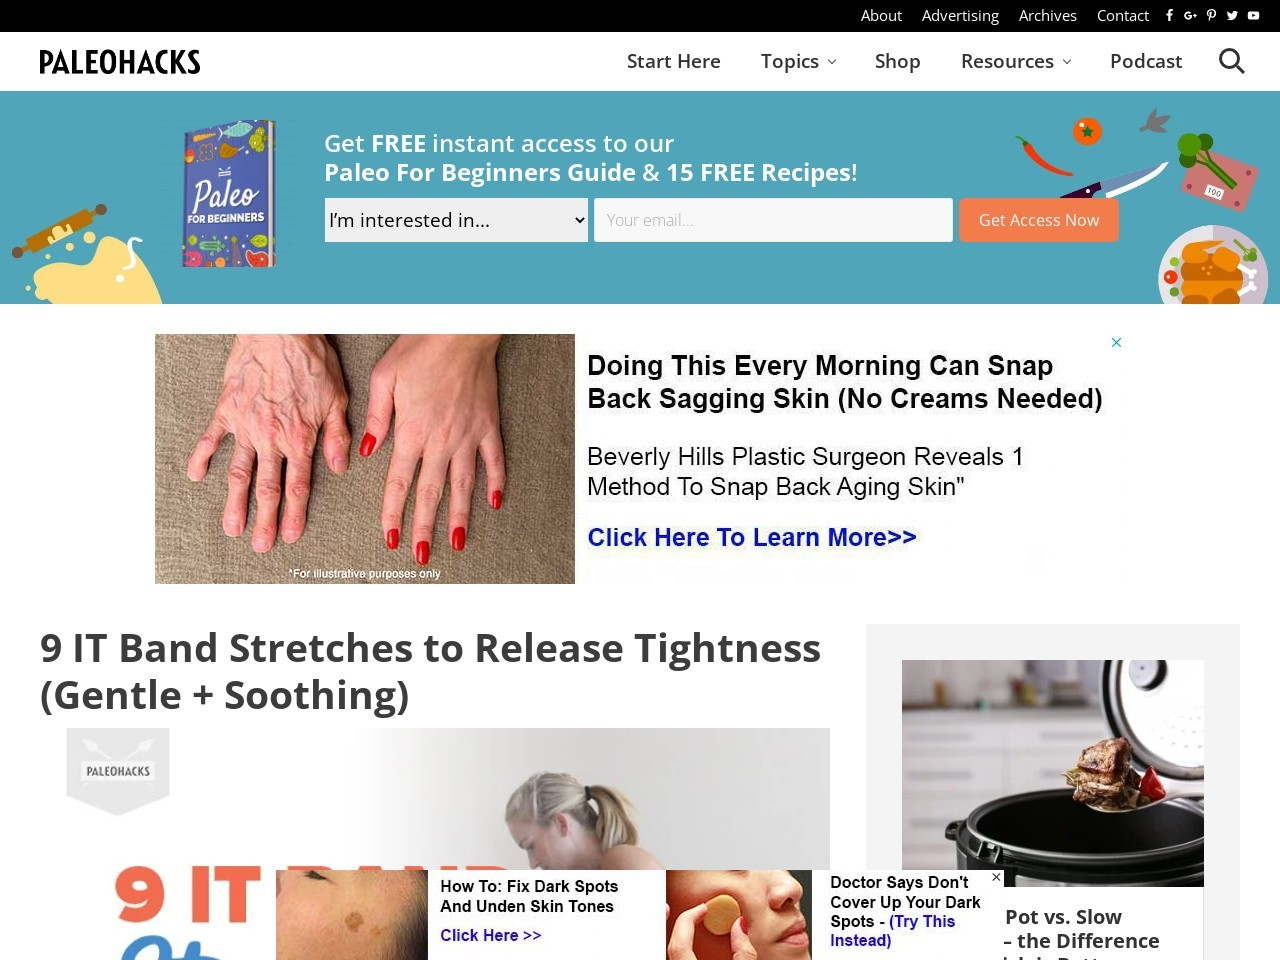 9 IT Band Stretches to Release Tightness (Gentle + Soothing)